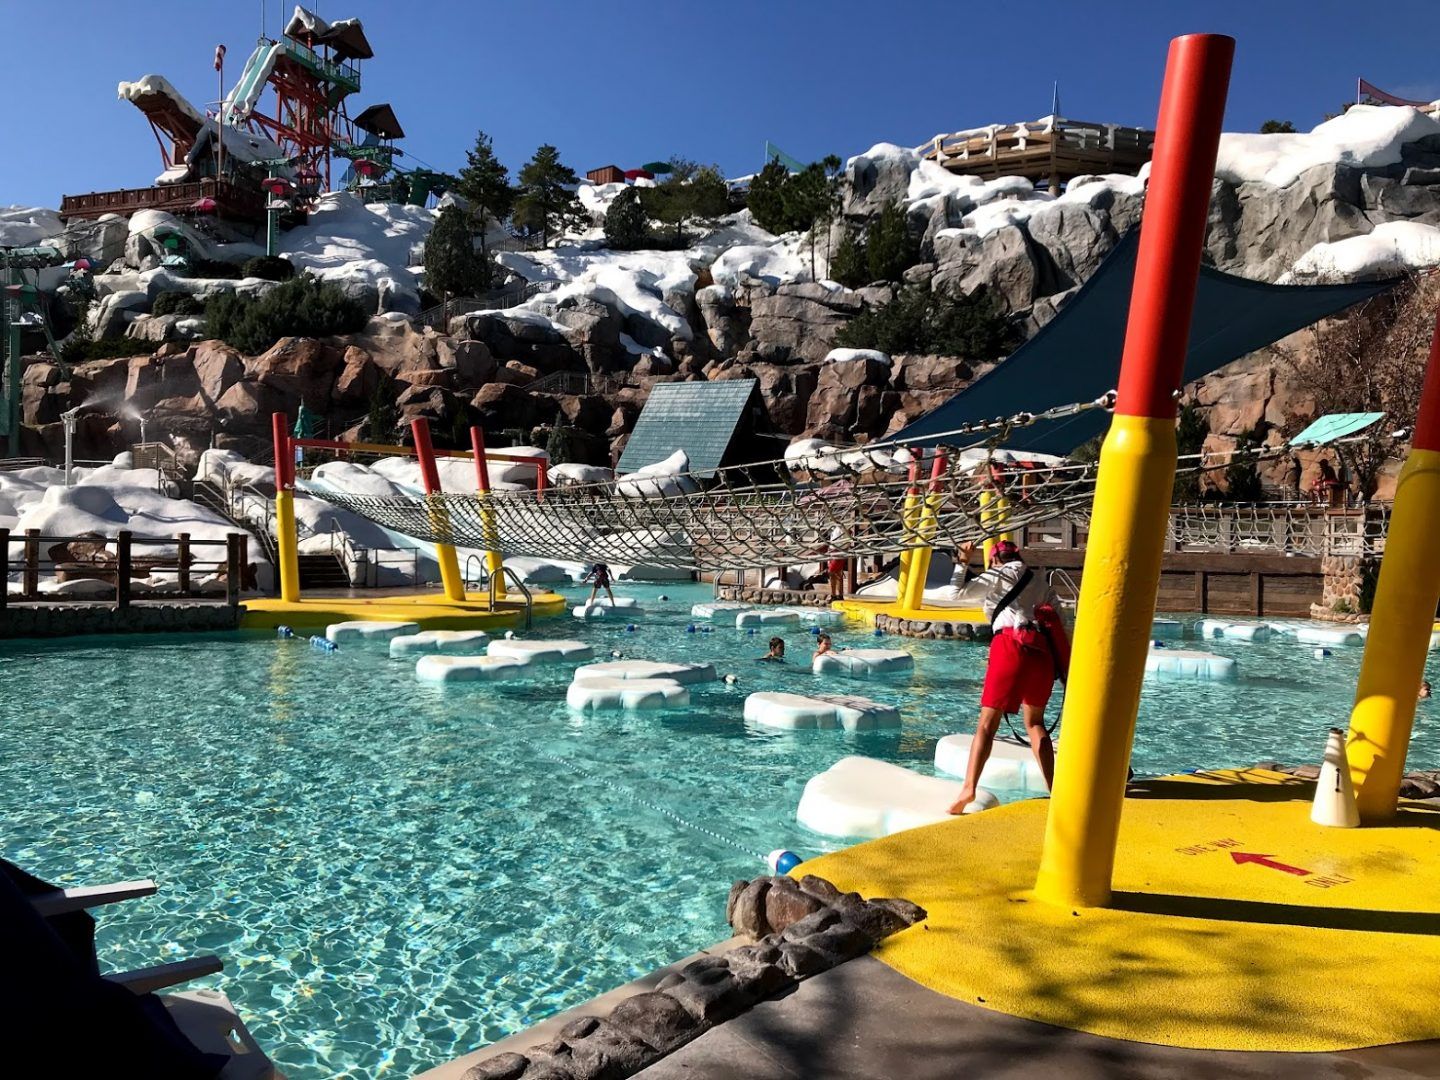 blizzard-beach-obstacle-course